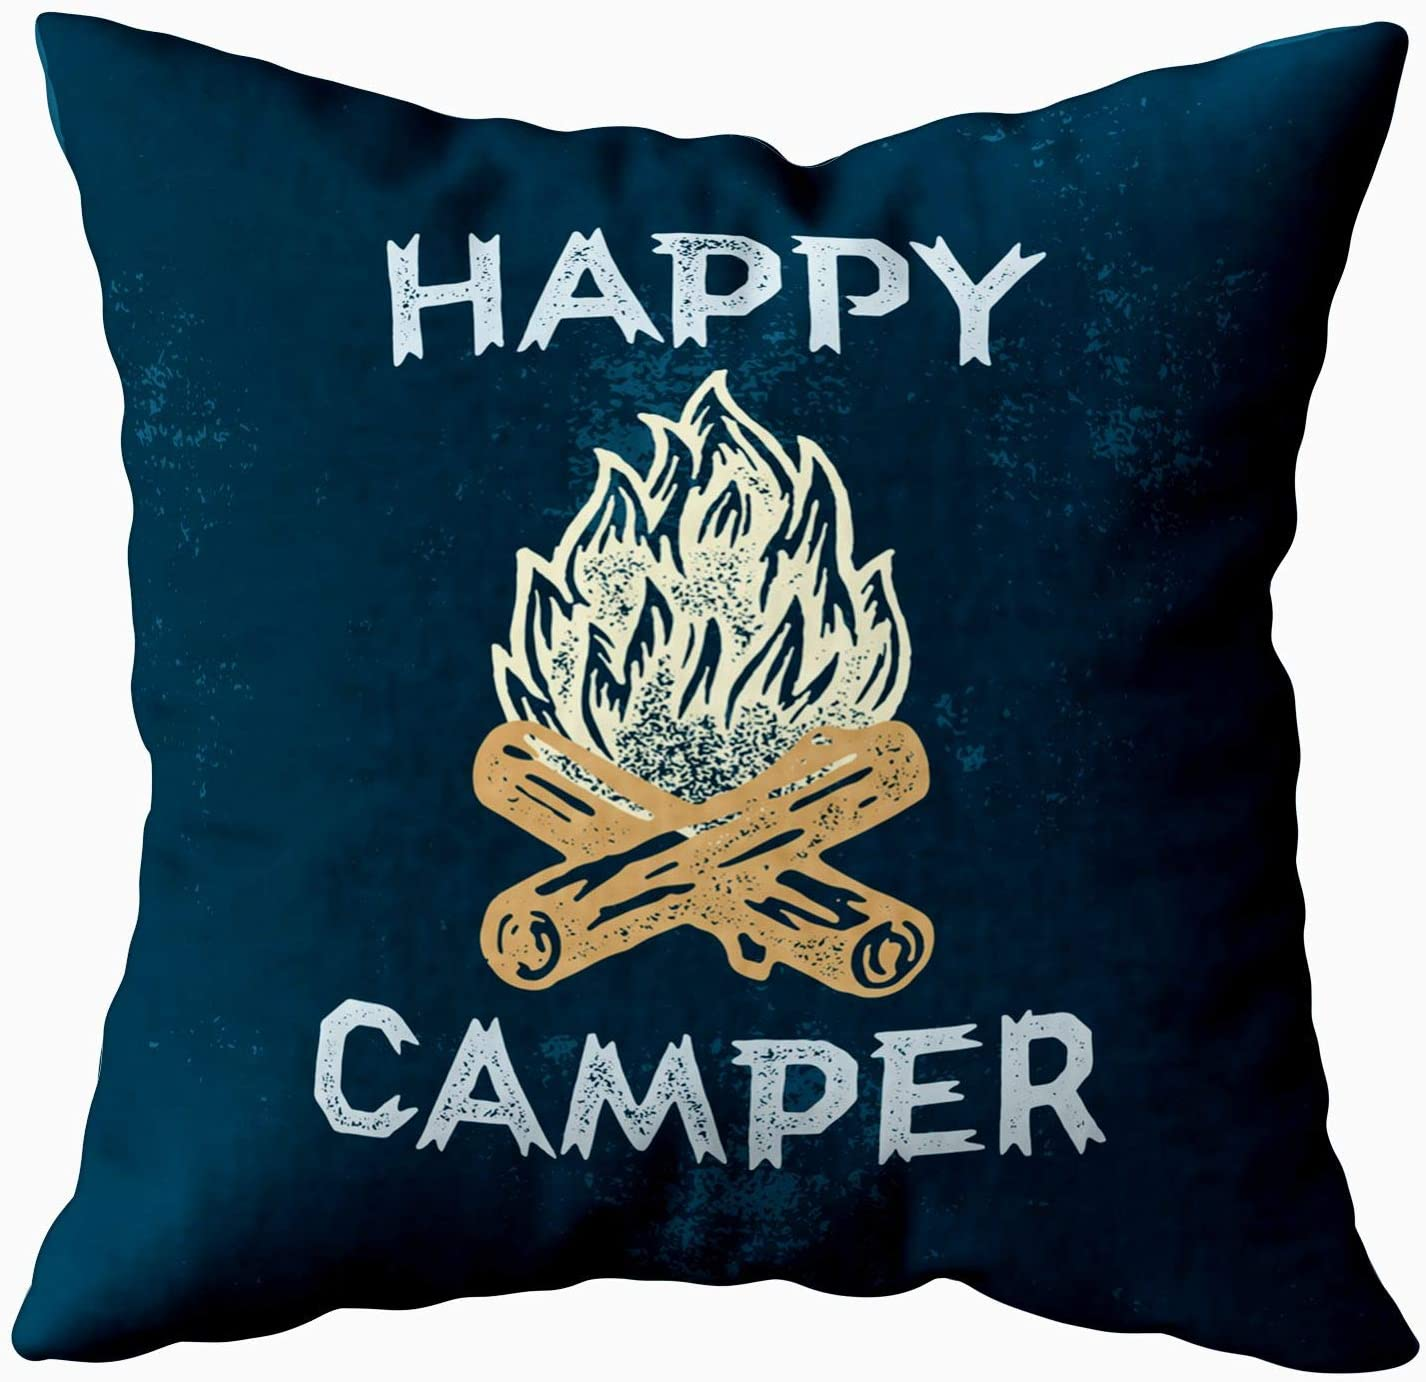 Shorping Decrotive Pillow Covers, Zippered Covers Pillowcases 18X18Inch Throw Pillow Covers Happy Lettering Apparel Print Outdoor Logo Emblem Campfire for Home Sofa Bedding